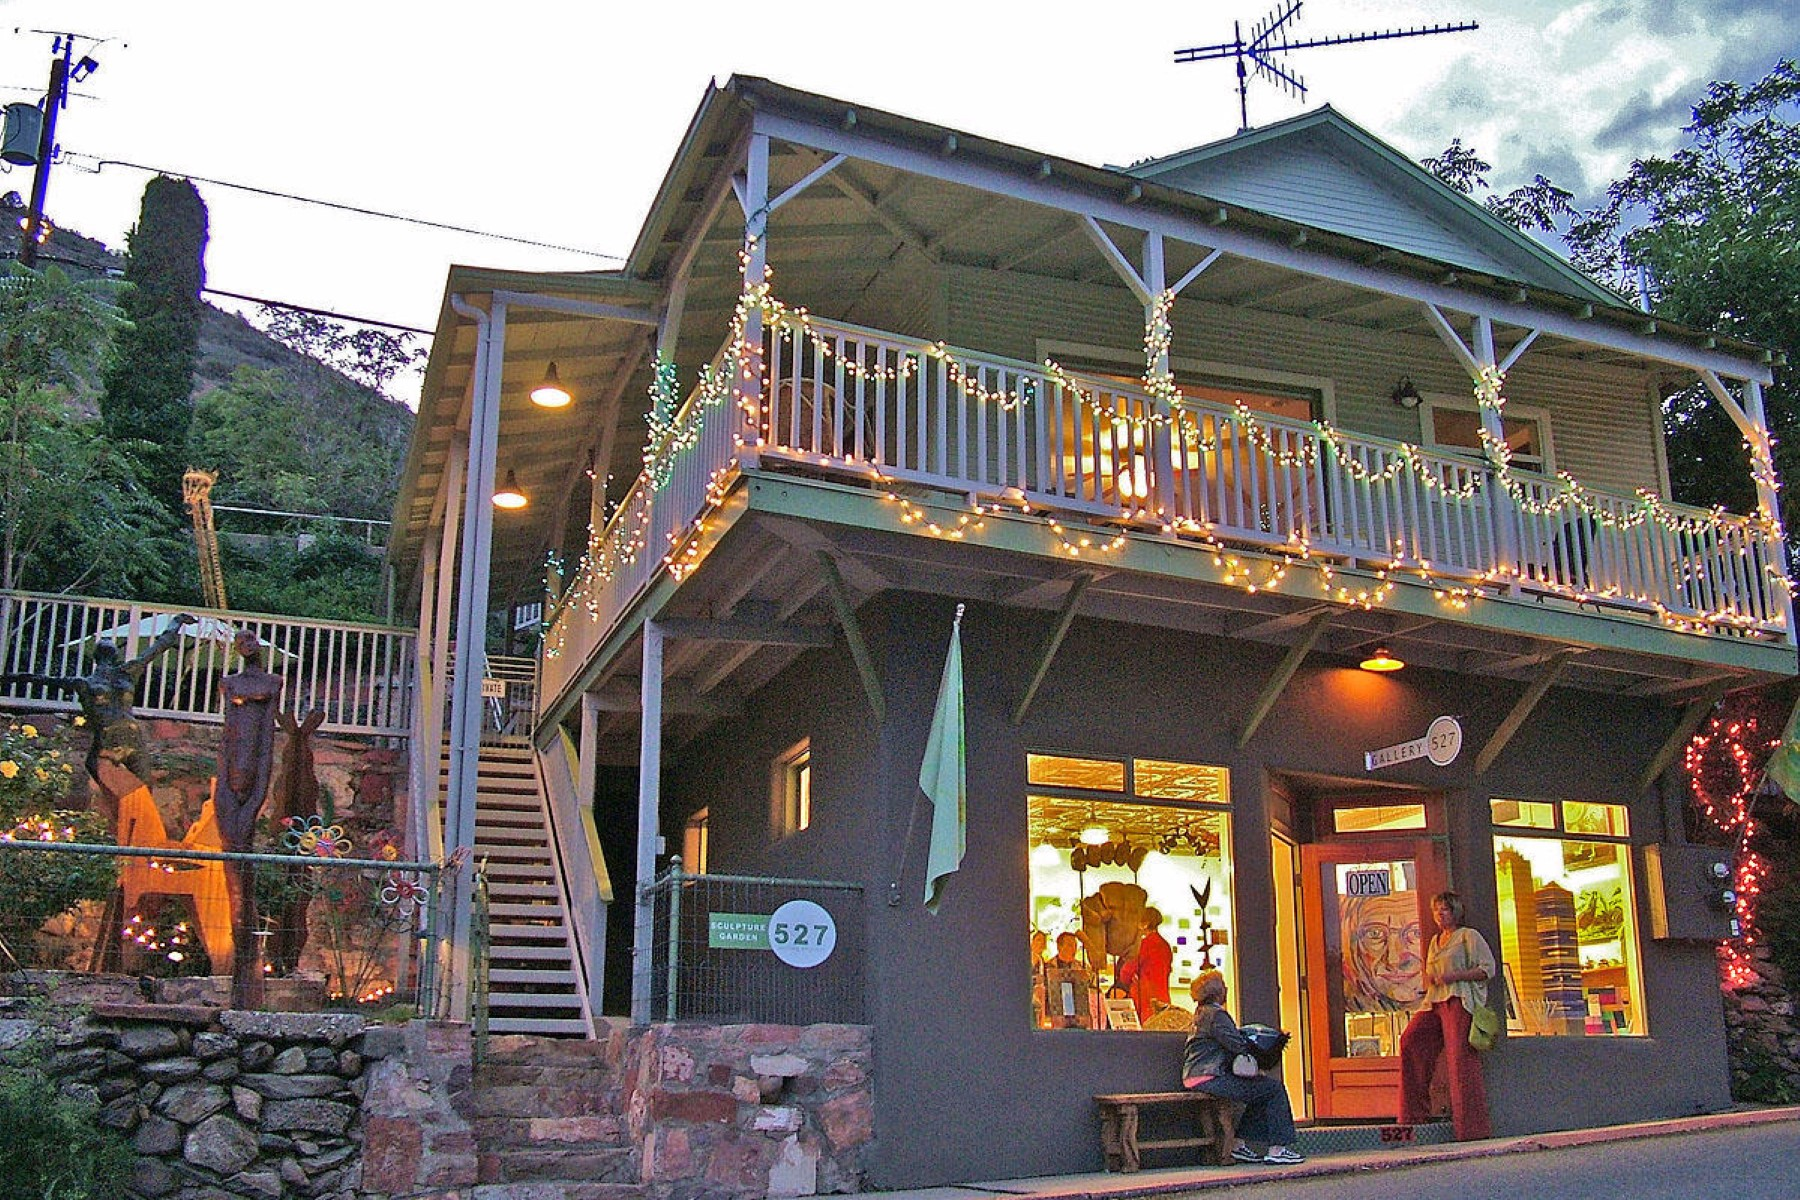 Single Family Home for Sale at Live the dream in Jerome 527 Main St Jerome, Arizona, 86331 United States